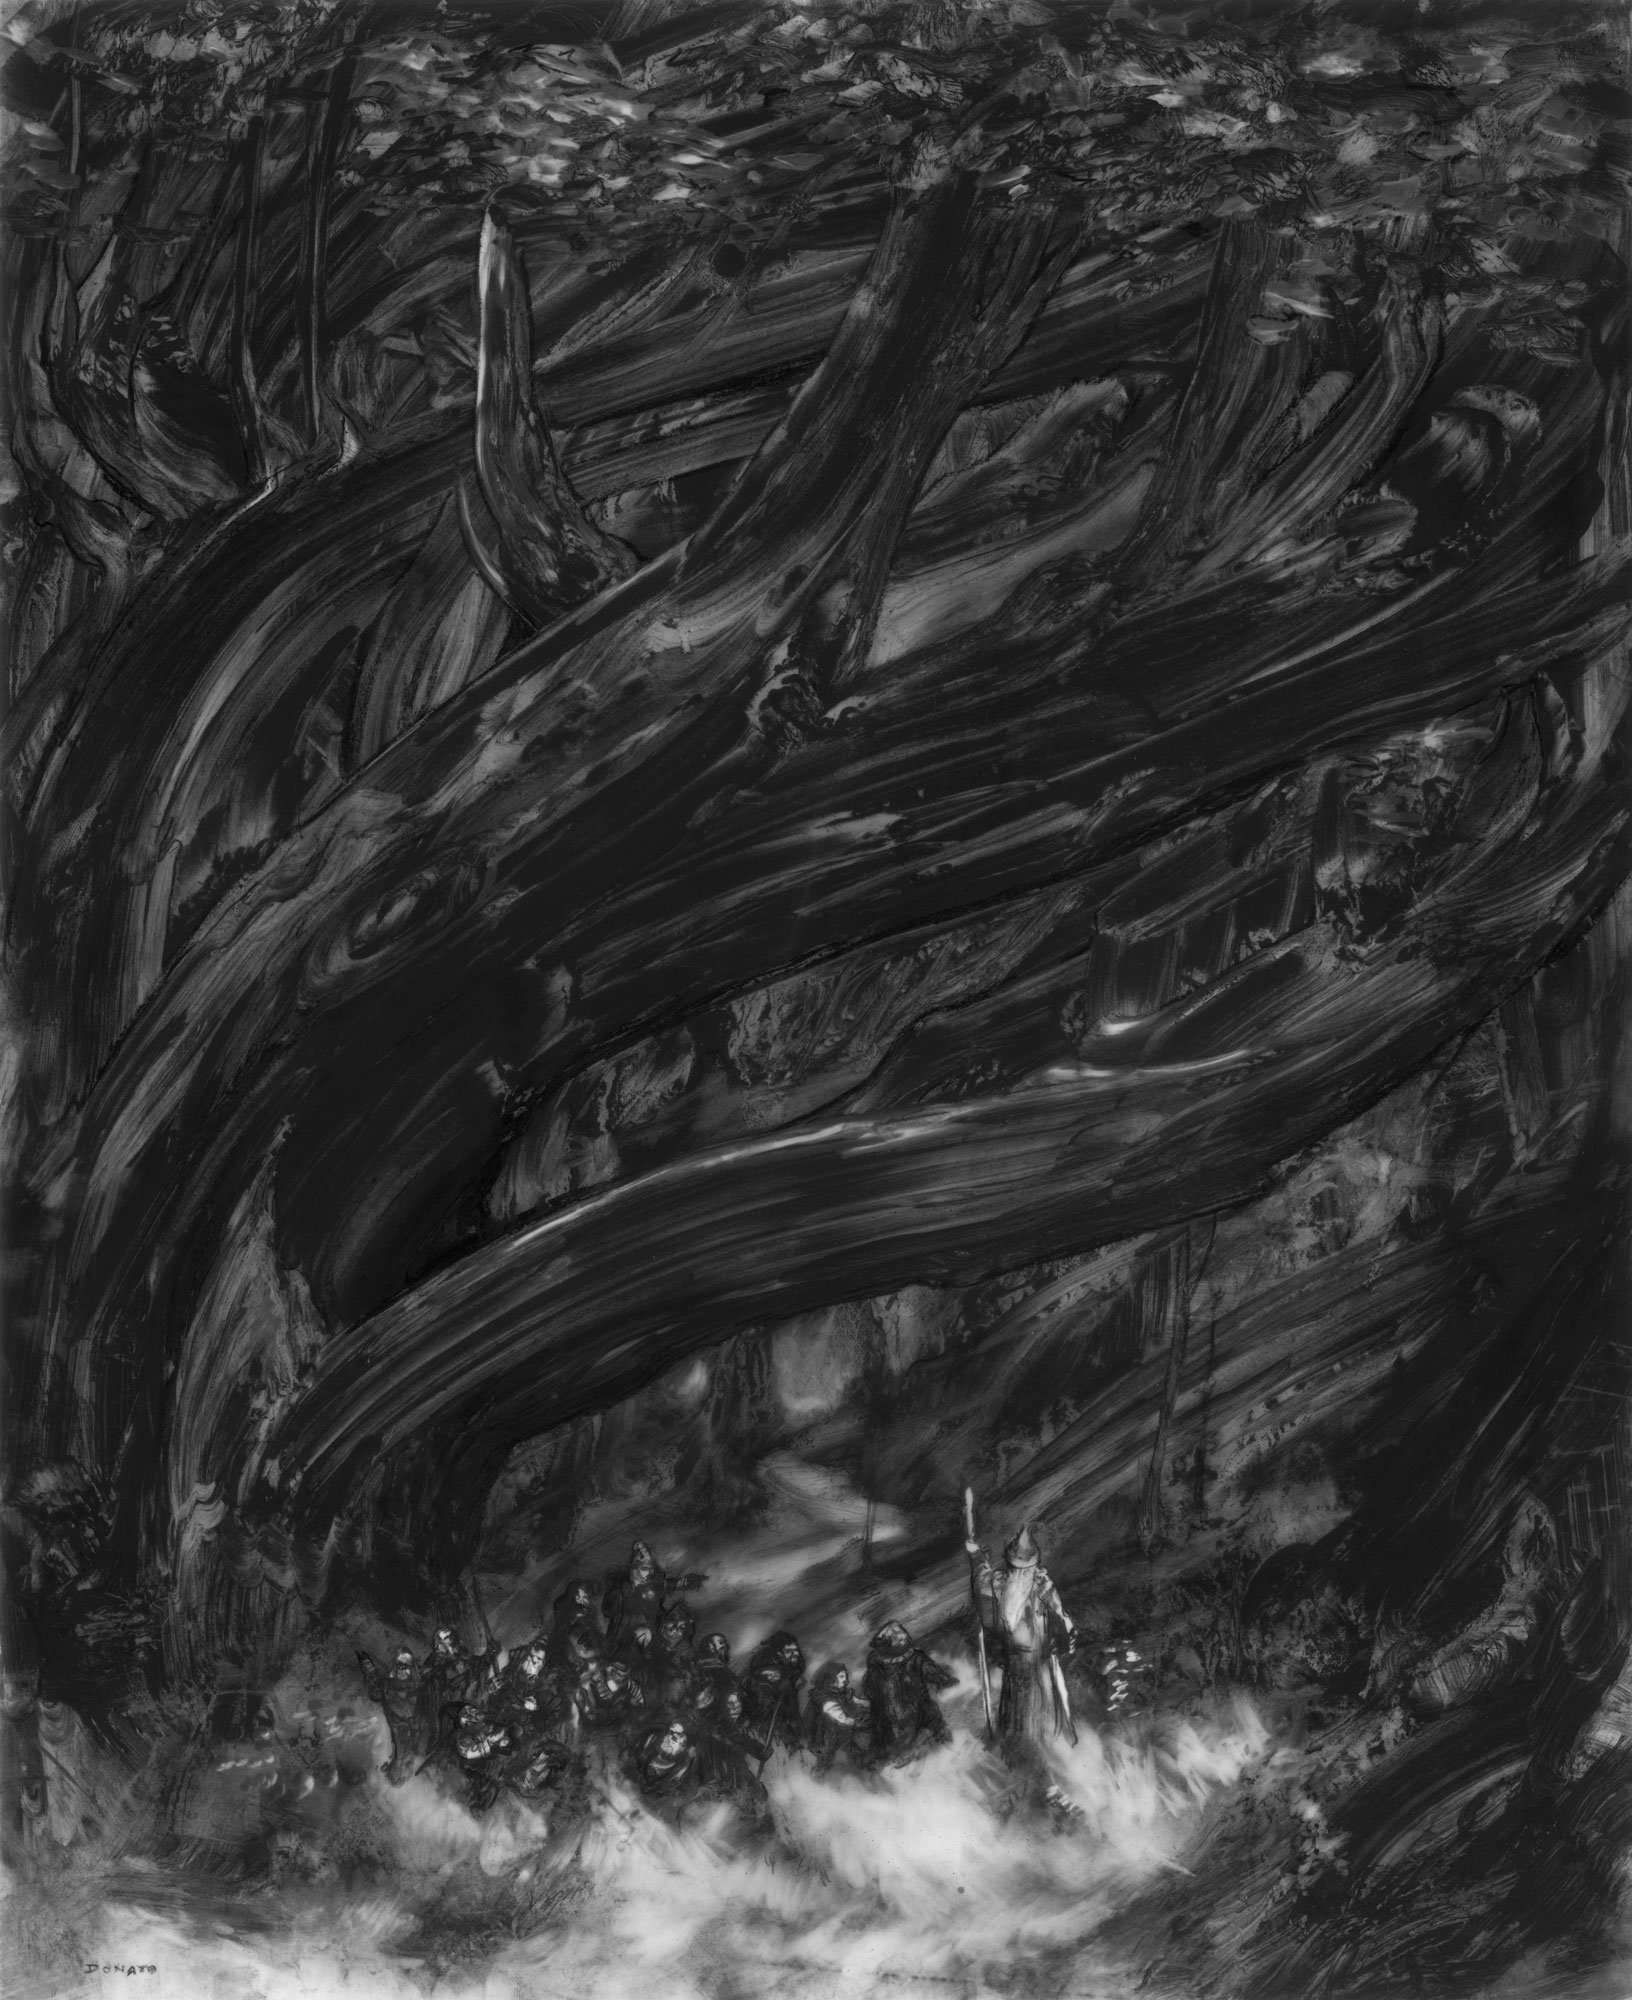 "Edge of Mirkwood Forest 17"" x 14"" graphite pencil and paint 2019 collection of Joshua Patel"